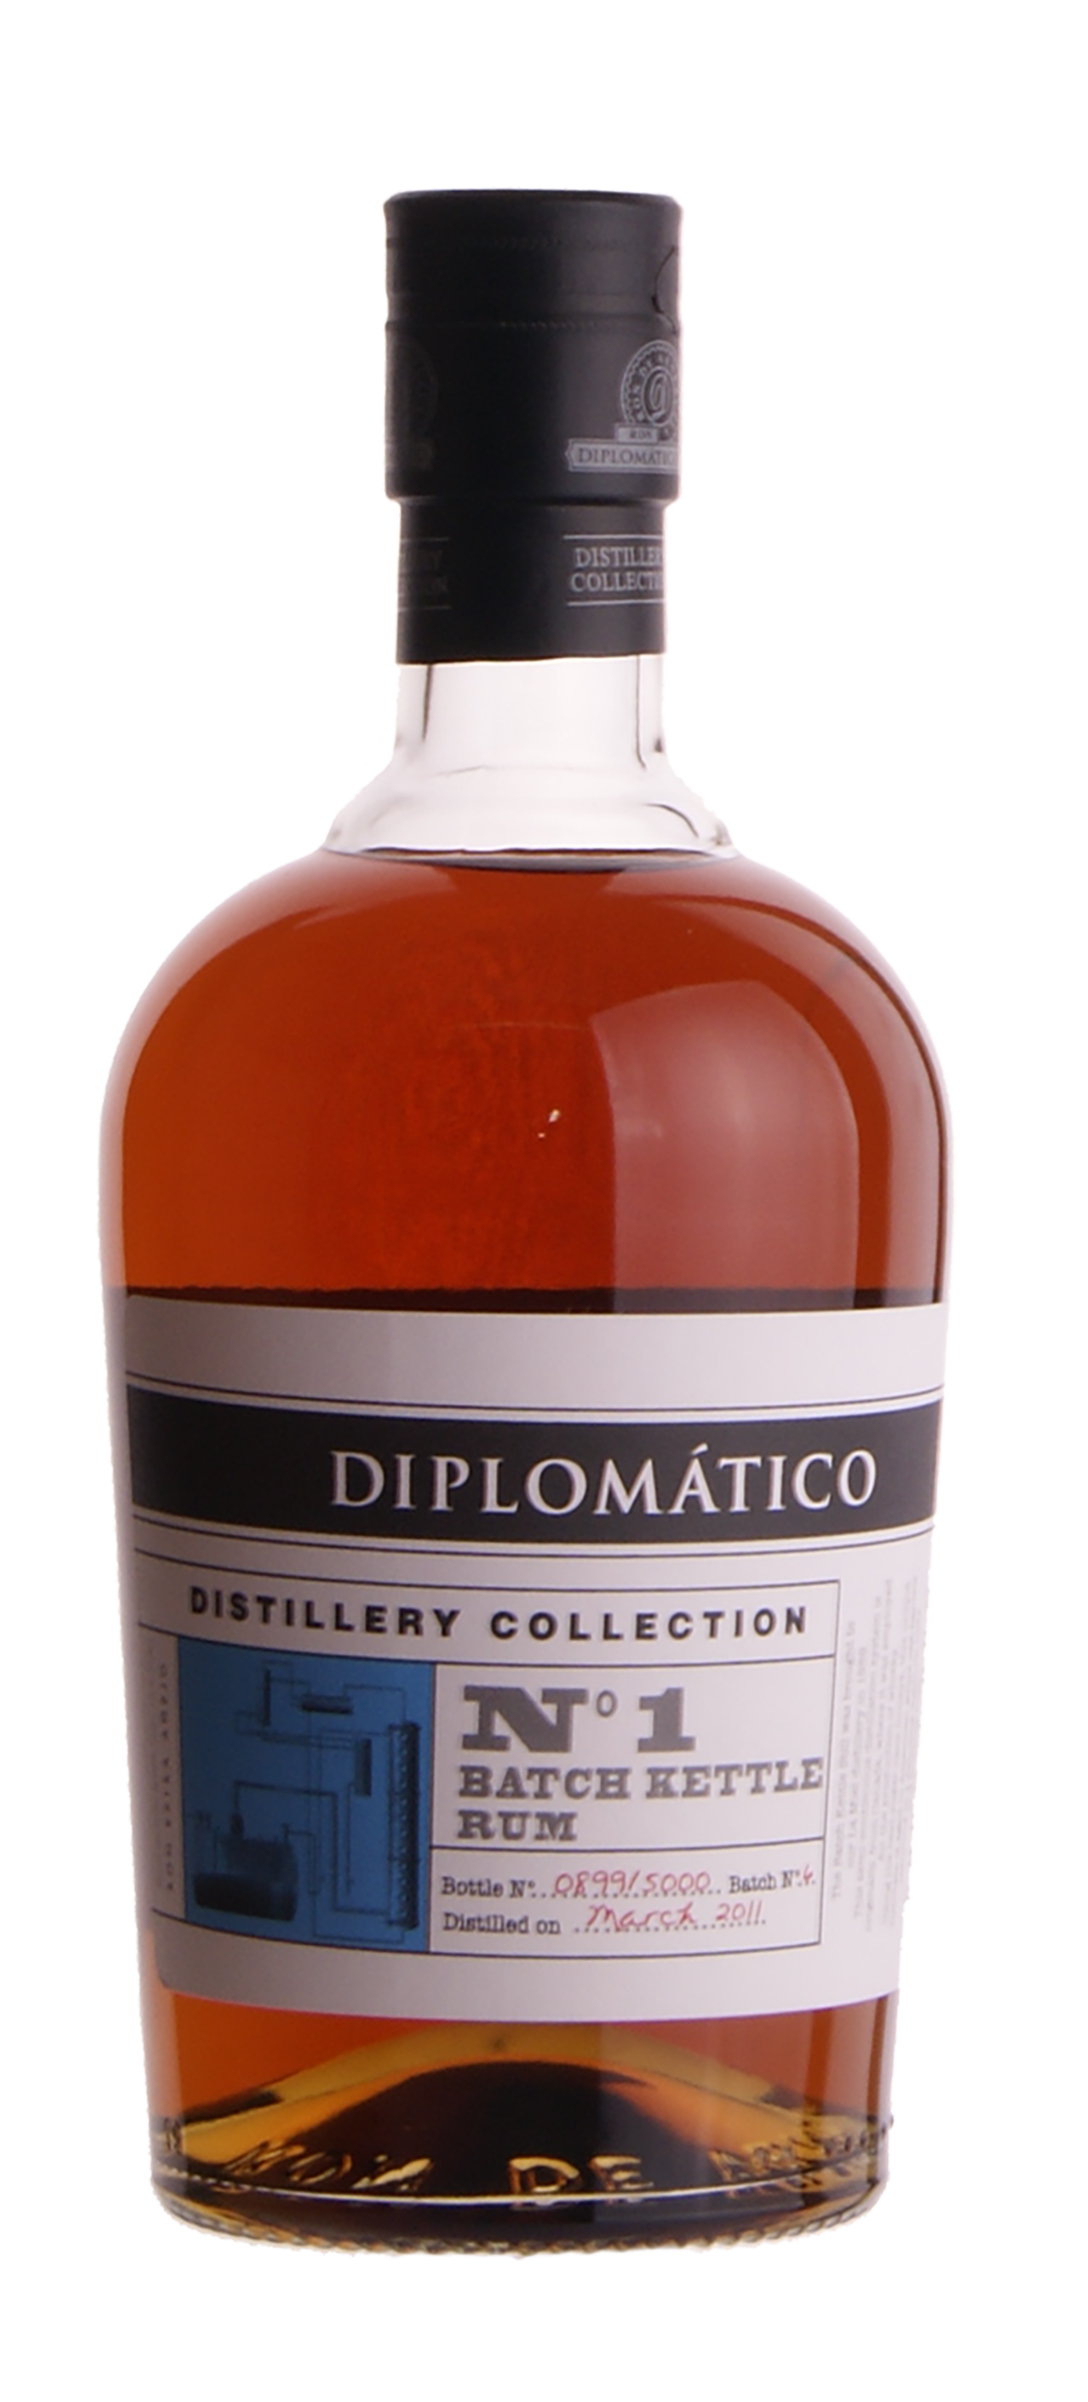 Diplomático Distillery Collection No1 Batch Kettle